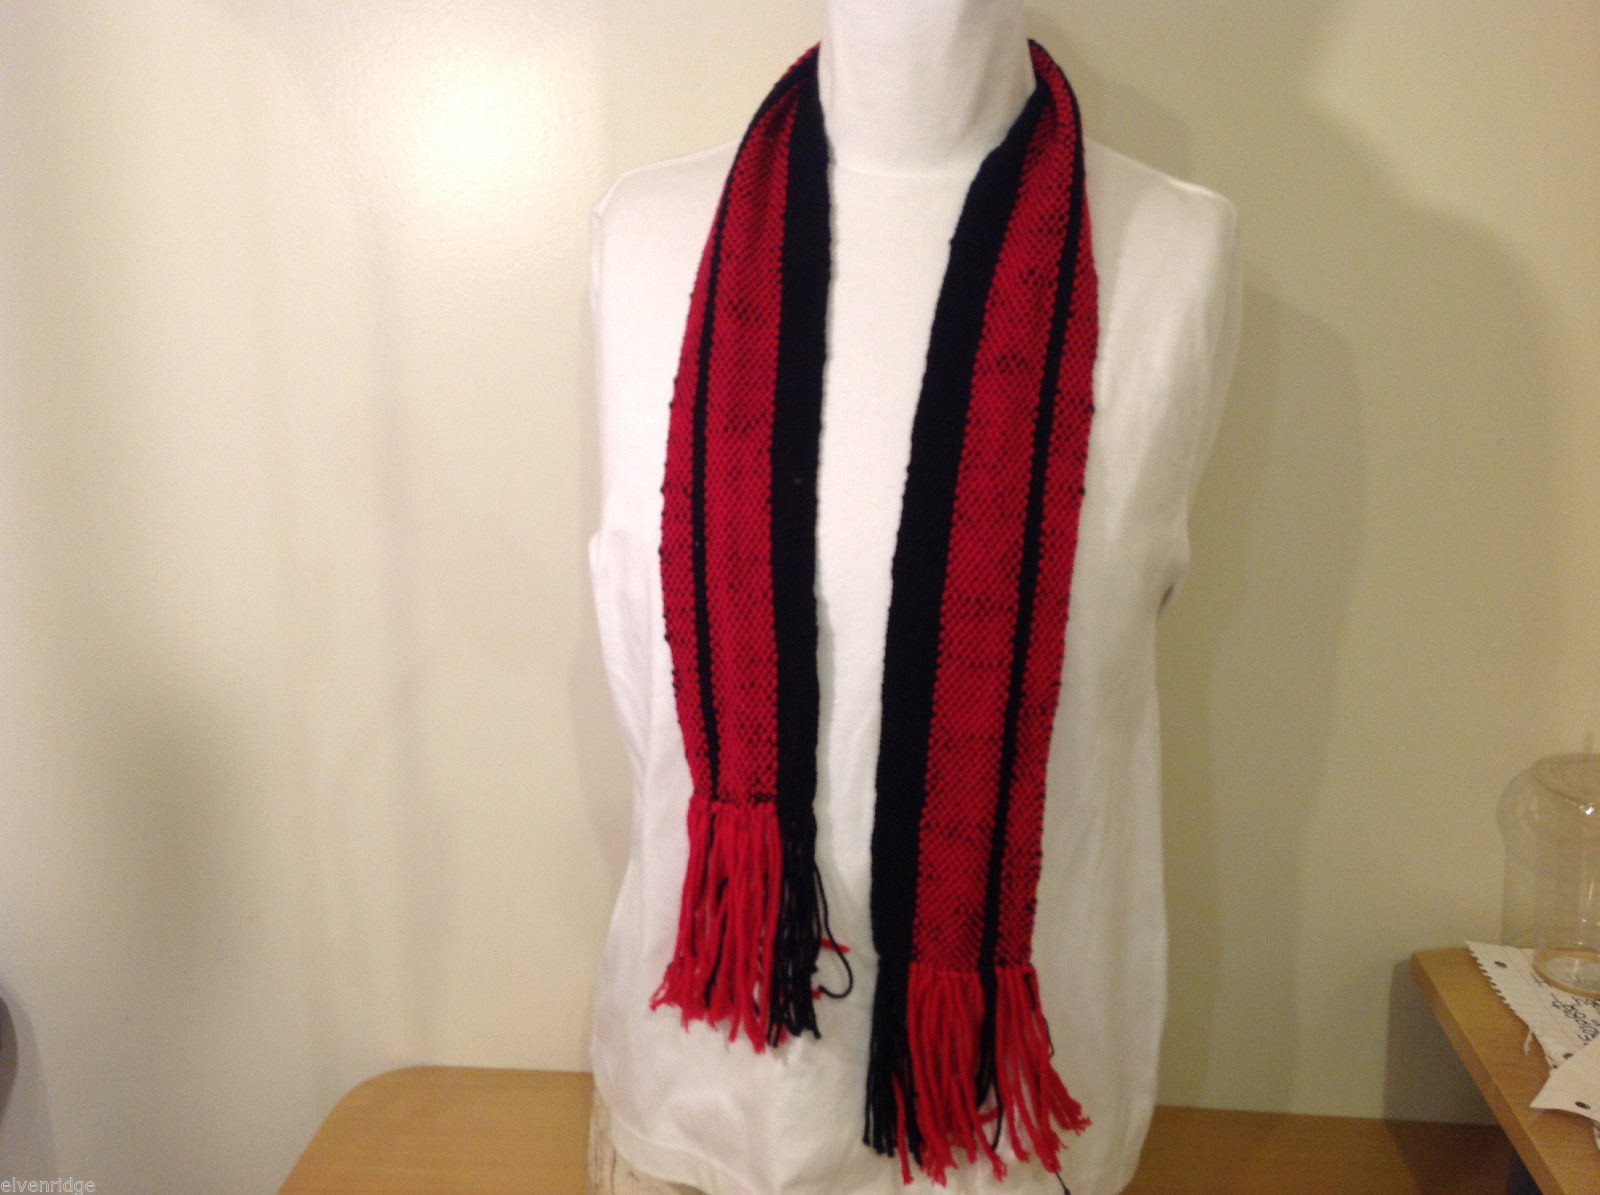 Black Red Striped Woven Pattern Scarf with Long Fringes